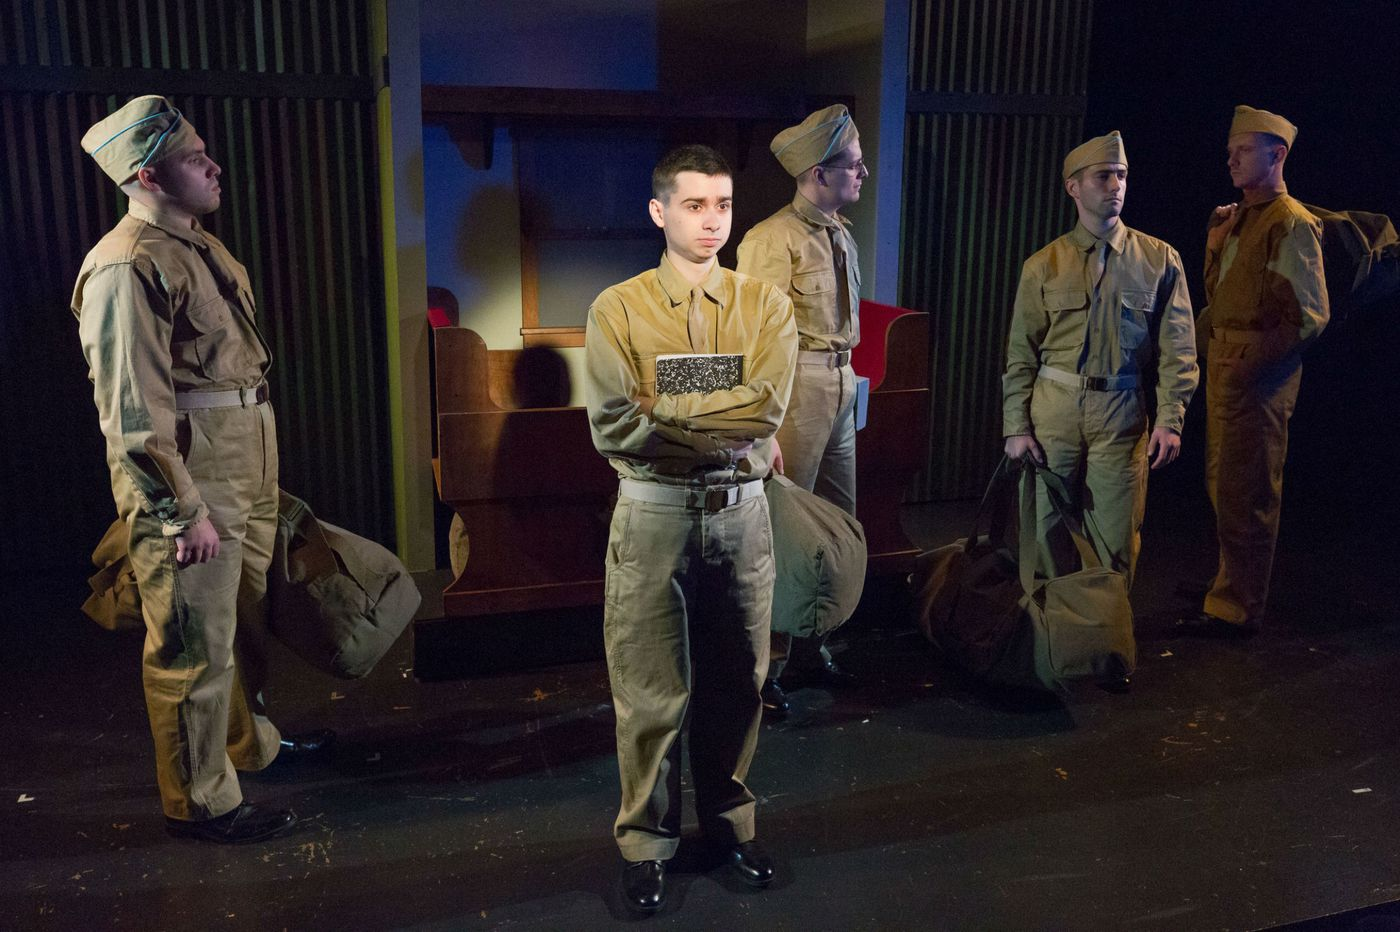 'Biloxi Blues' at Act II: Power struggle in this boy's army